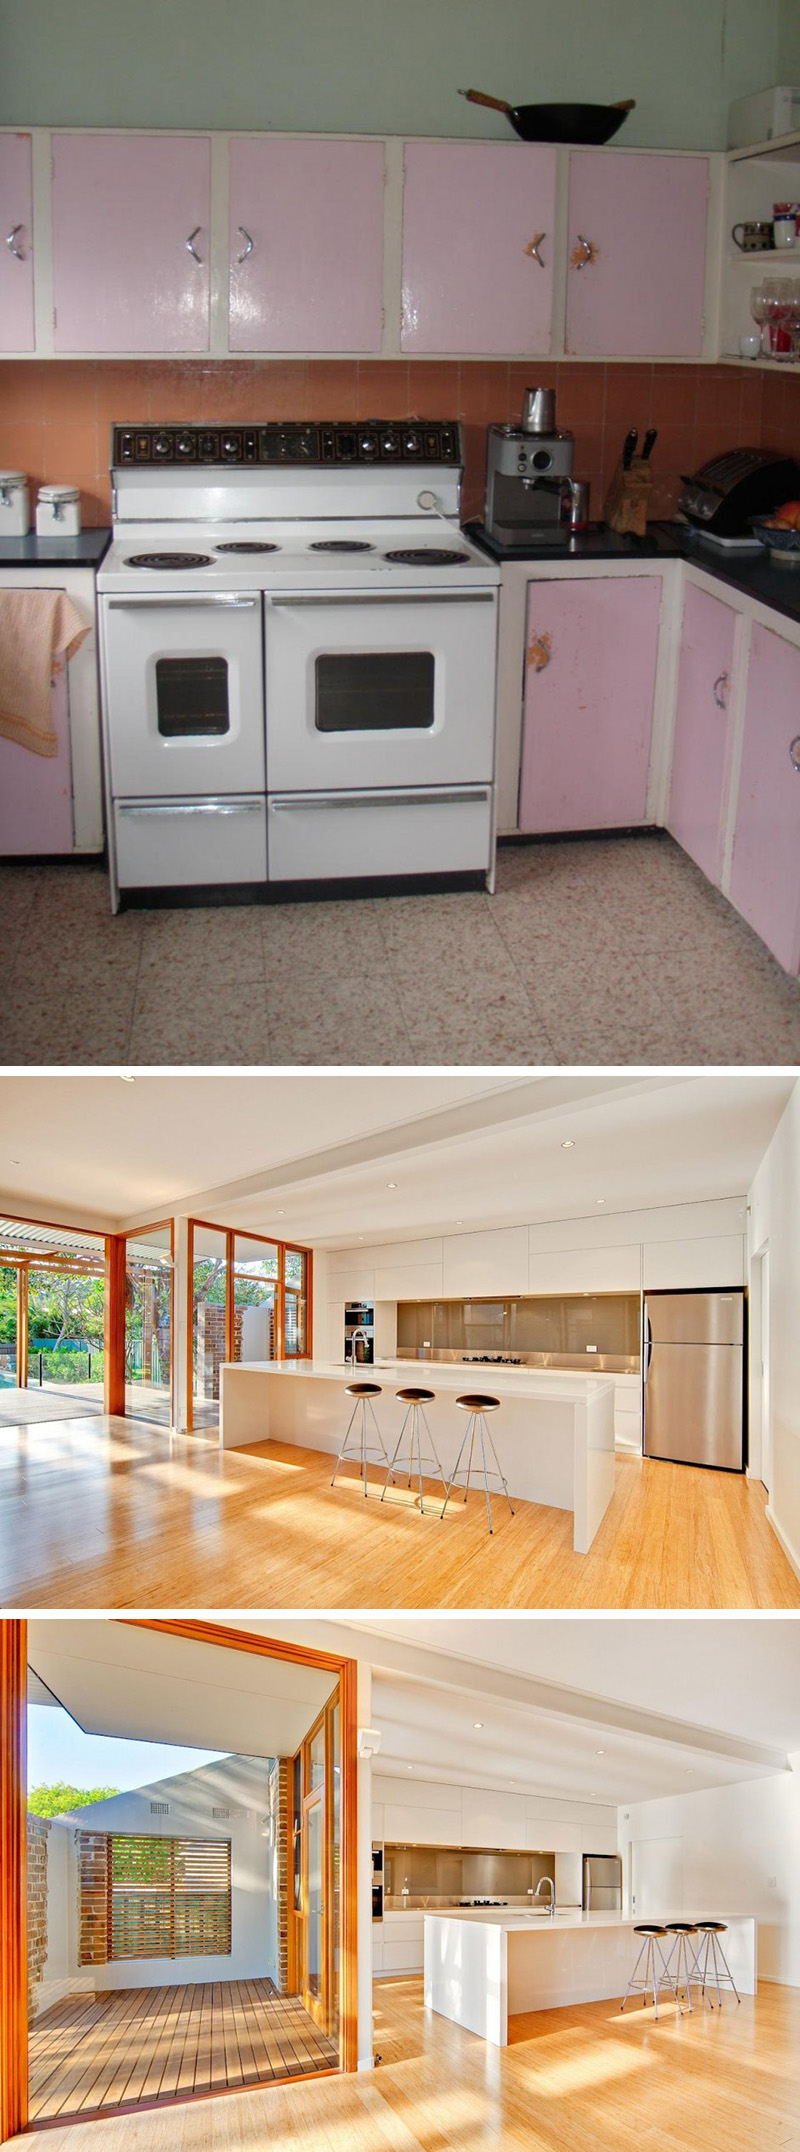 The pink cabinets, outdated stove, and tiled floor were all taken out and replaced with shiny new appliances, bright white cabinets, a long island with bar seating, and a new wood floor to make this kitchen modern.